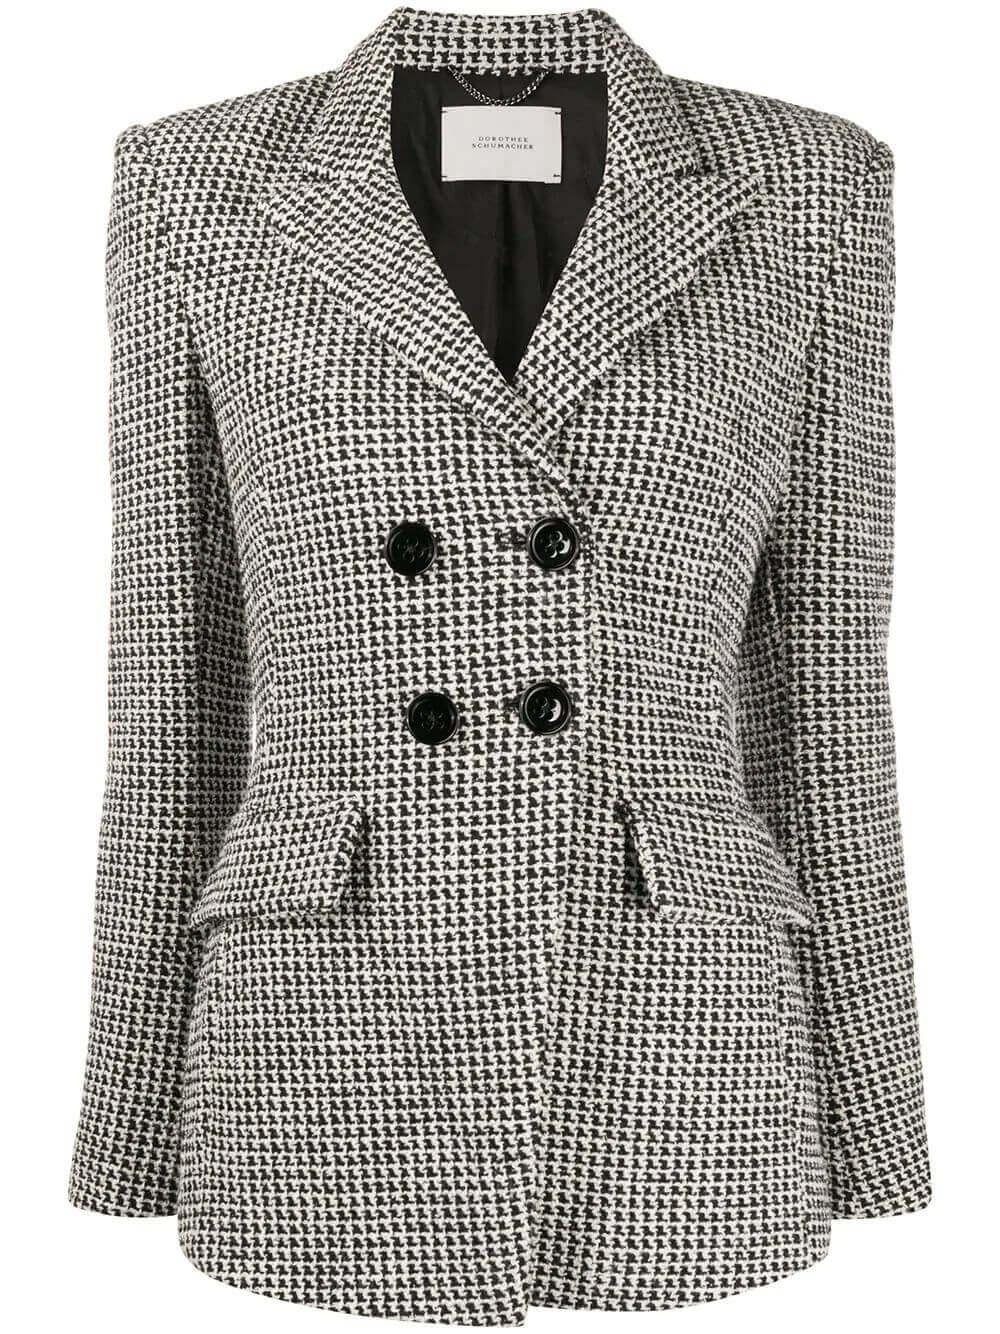 Checked Comfort Tweed Jacket